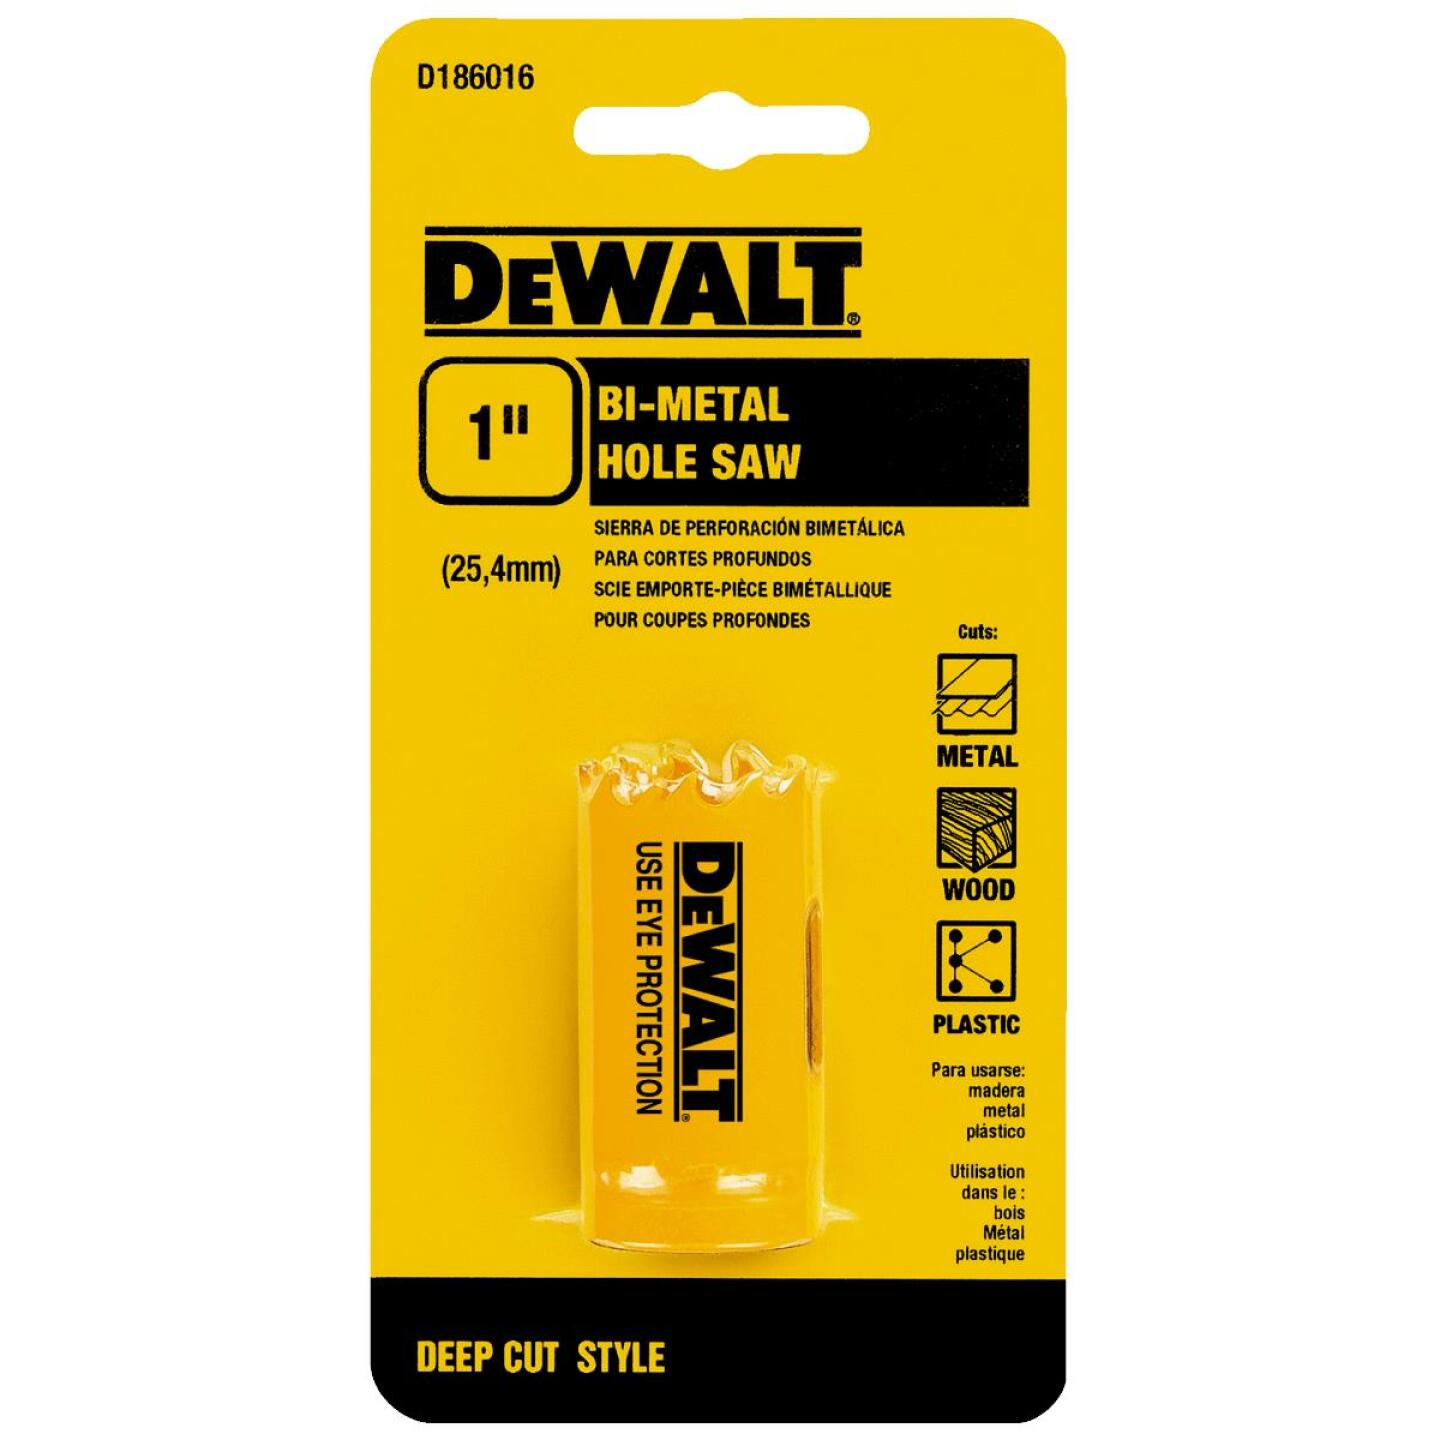 DeWalt 1 In. Bi-Metal Hole Saw Image 2